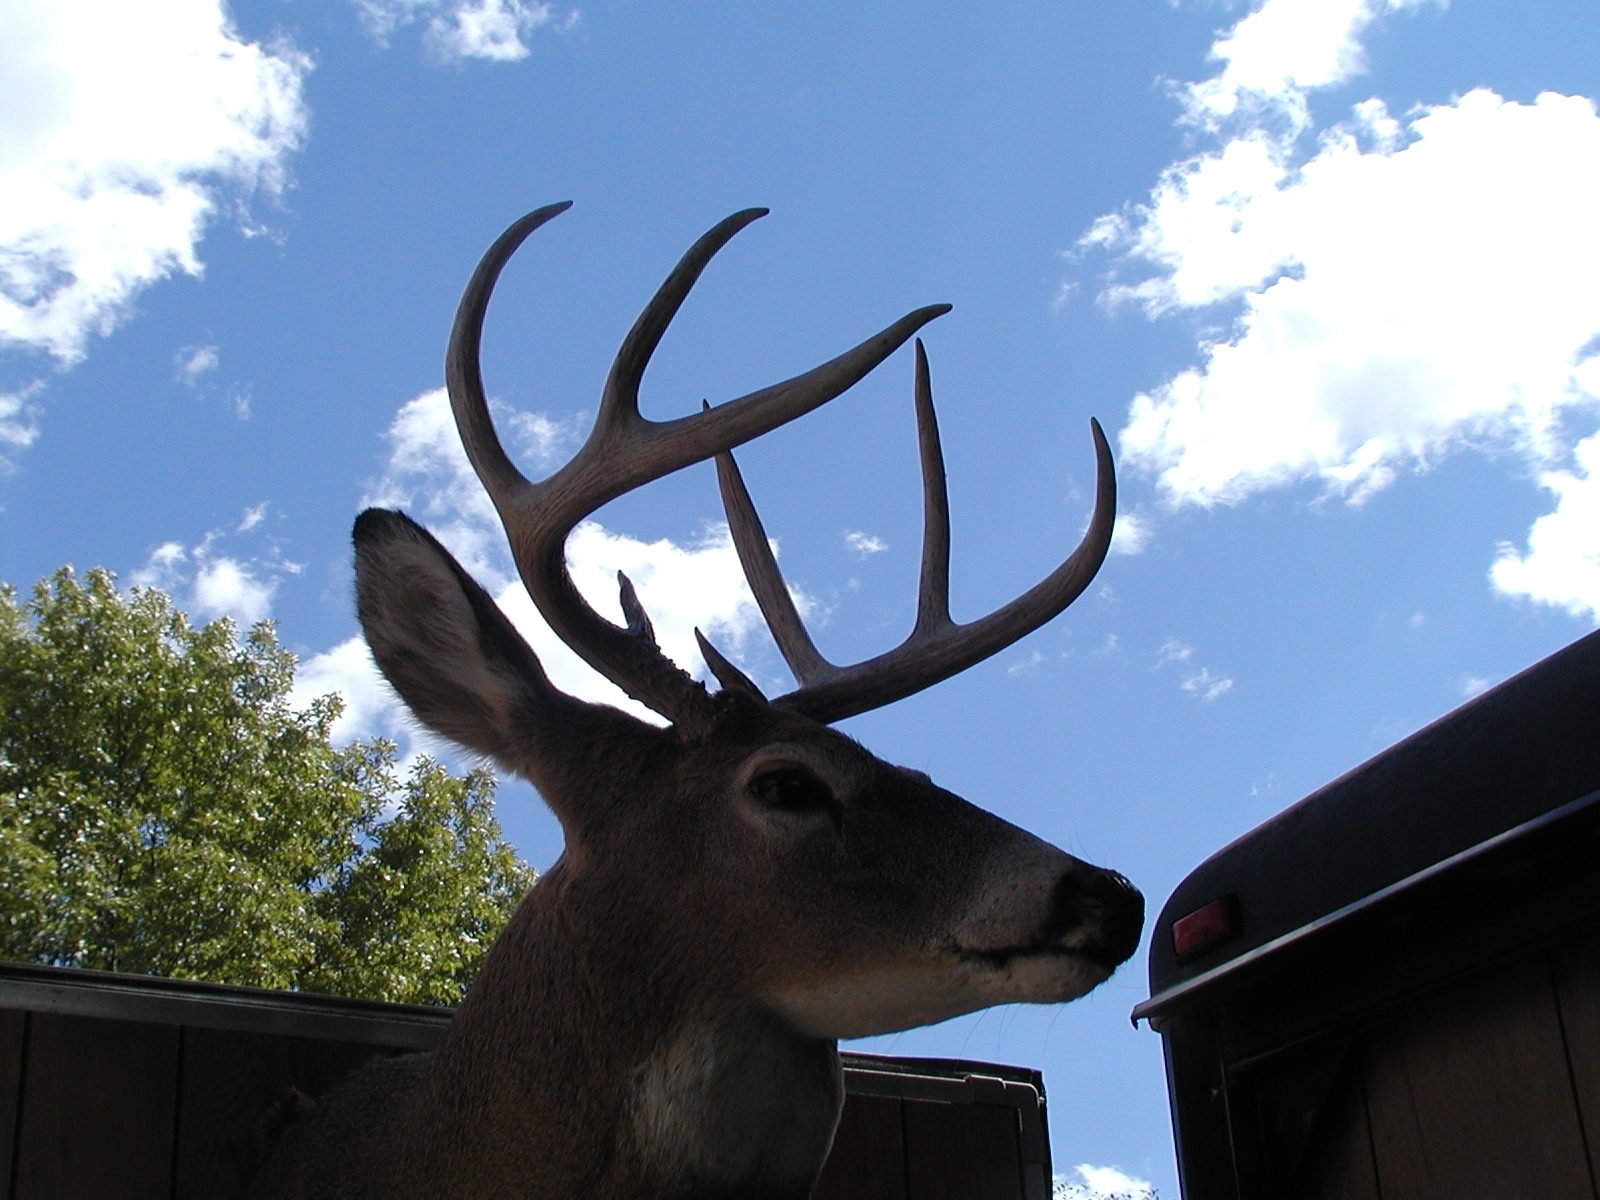 File photo of a mounted deer head against the sky.